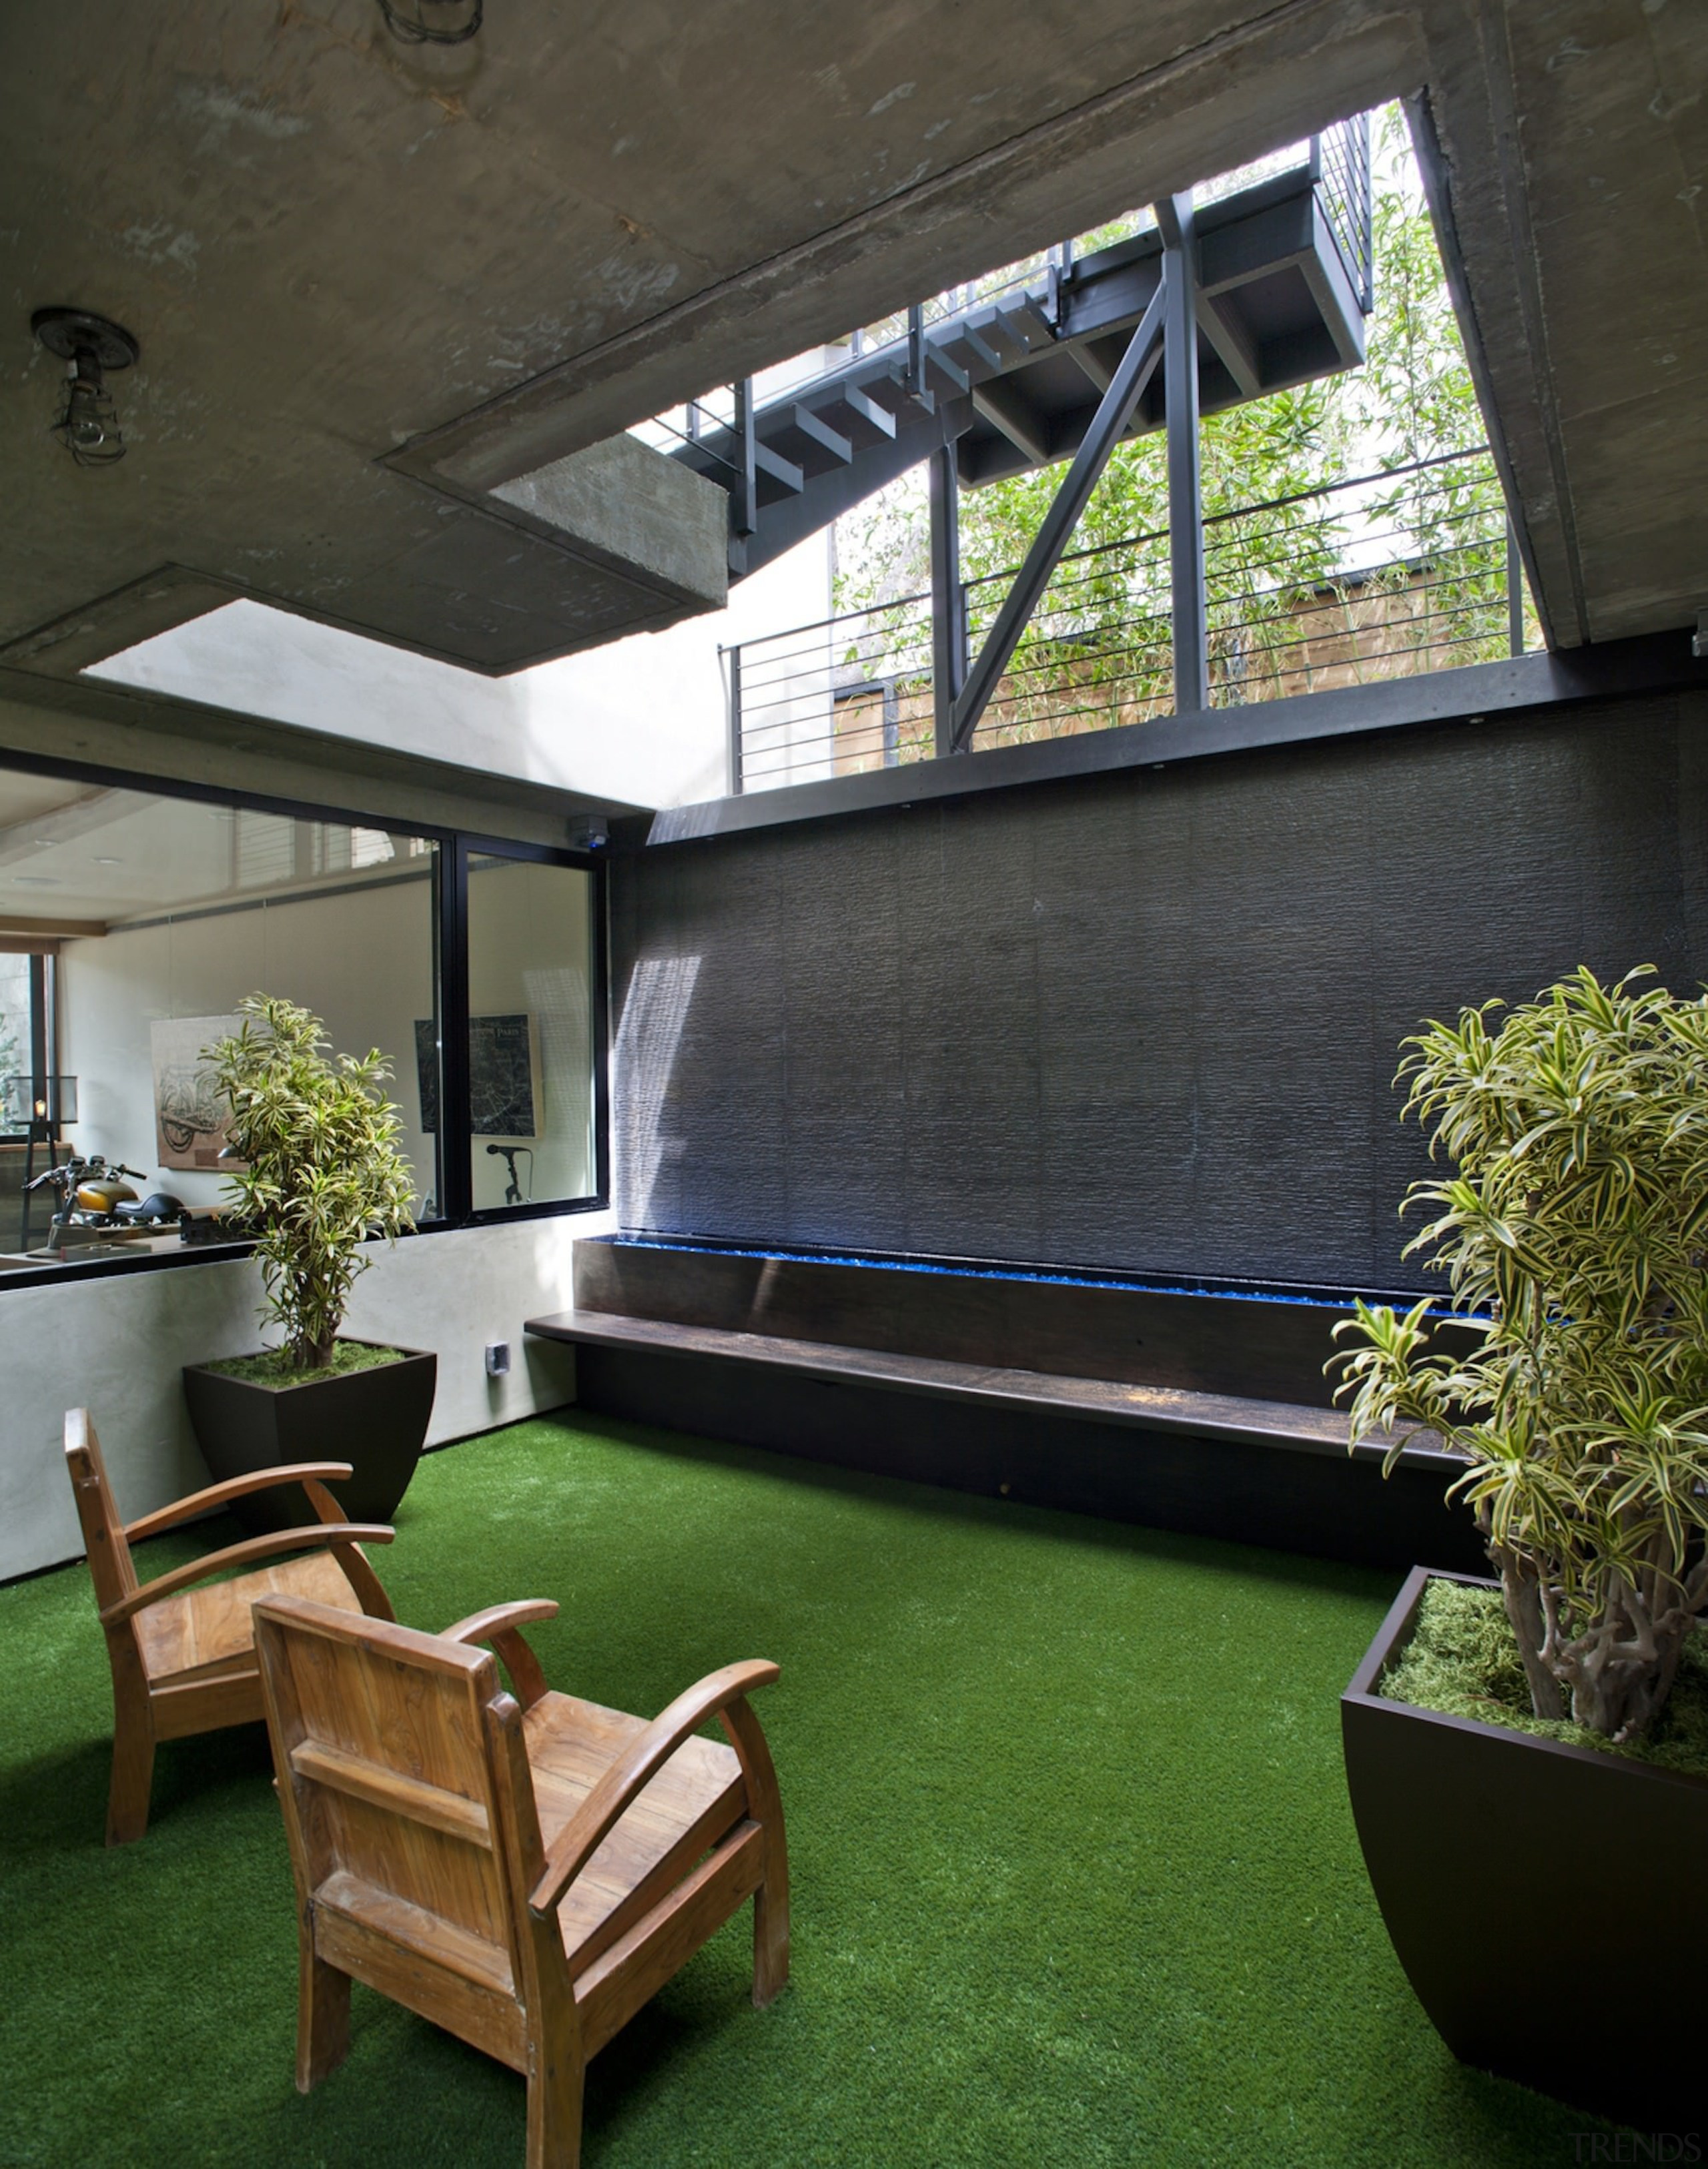 This outdoor room looks like the perfect place architecture, backyard, courtyard, daylighting, grass, house, interior design, plant, property, real estate, roof, window, black